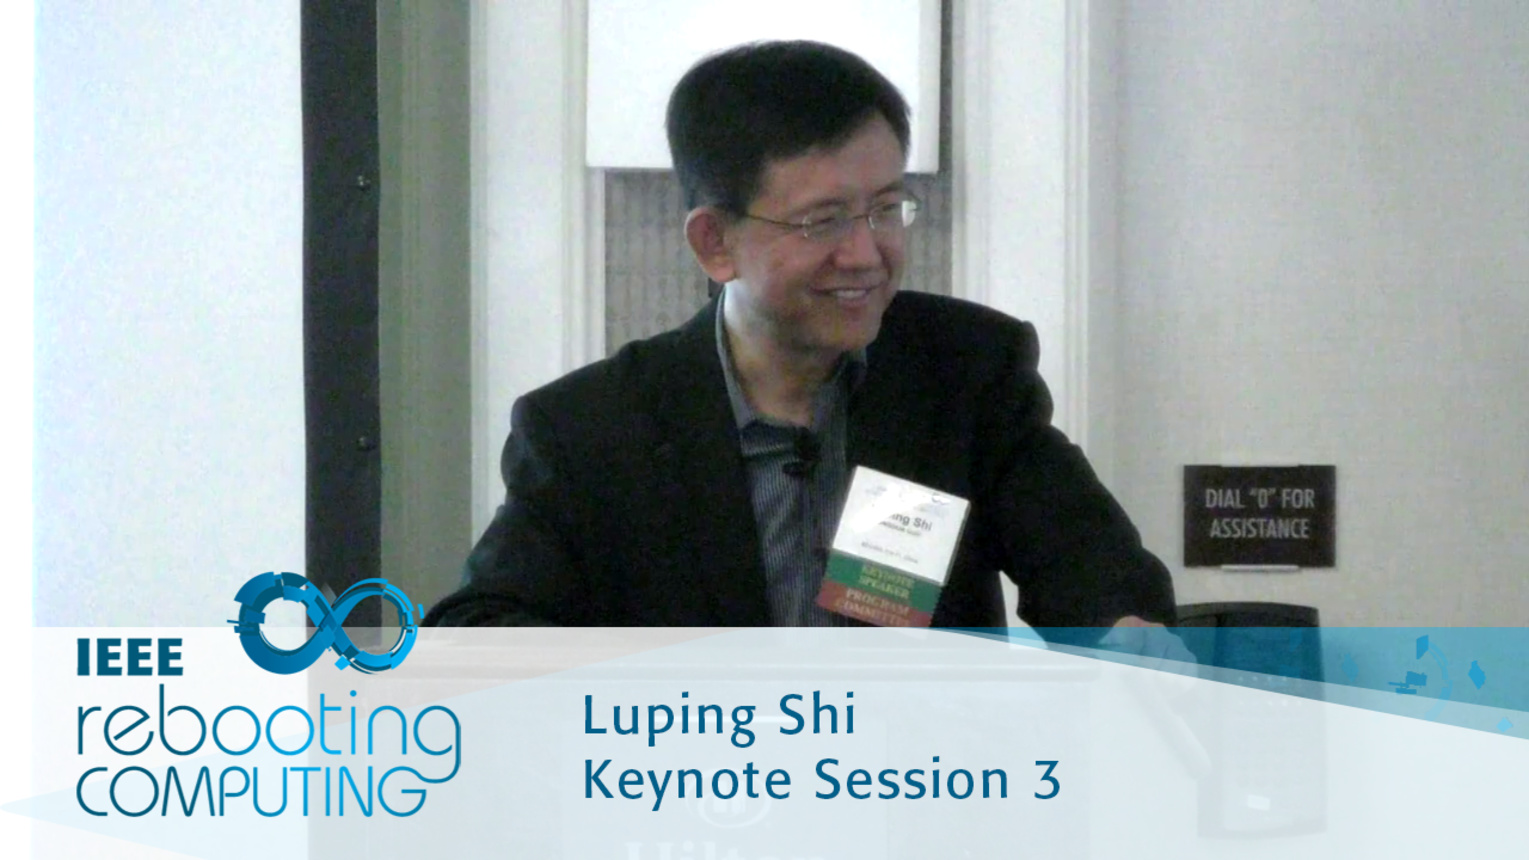 Brain Inspired Computing Systems - Luping Shi: 2016 International Conference on Rebooting Computing